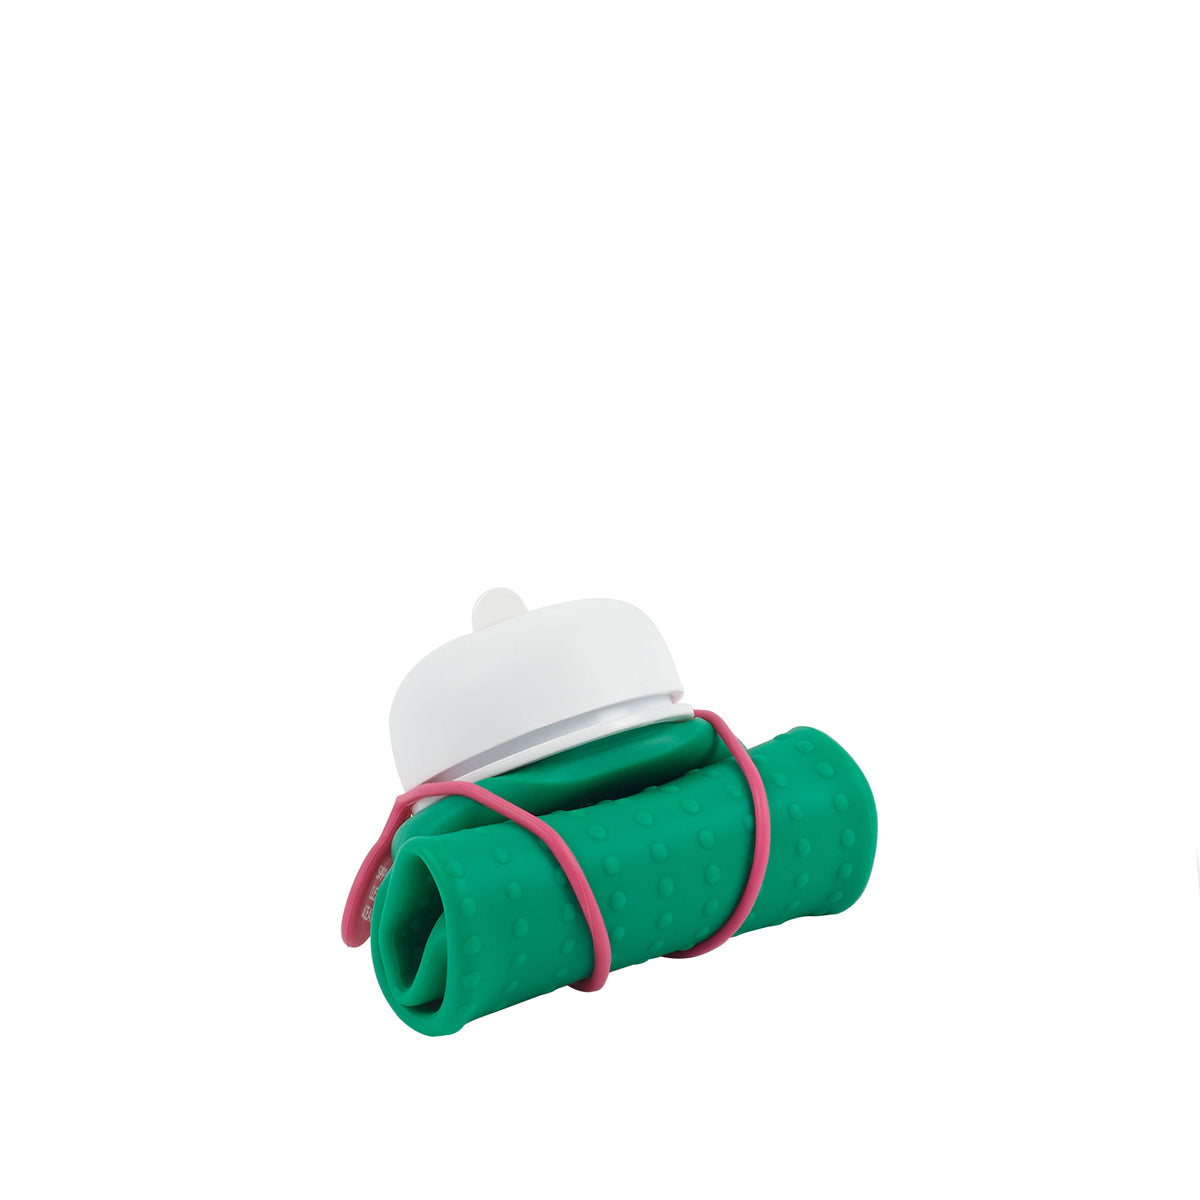 Rolla Bottle - Green, White Lid + Pink Strap